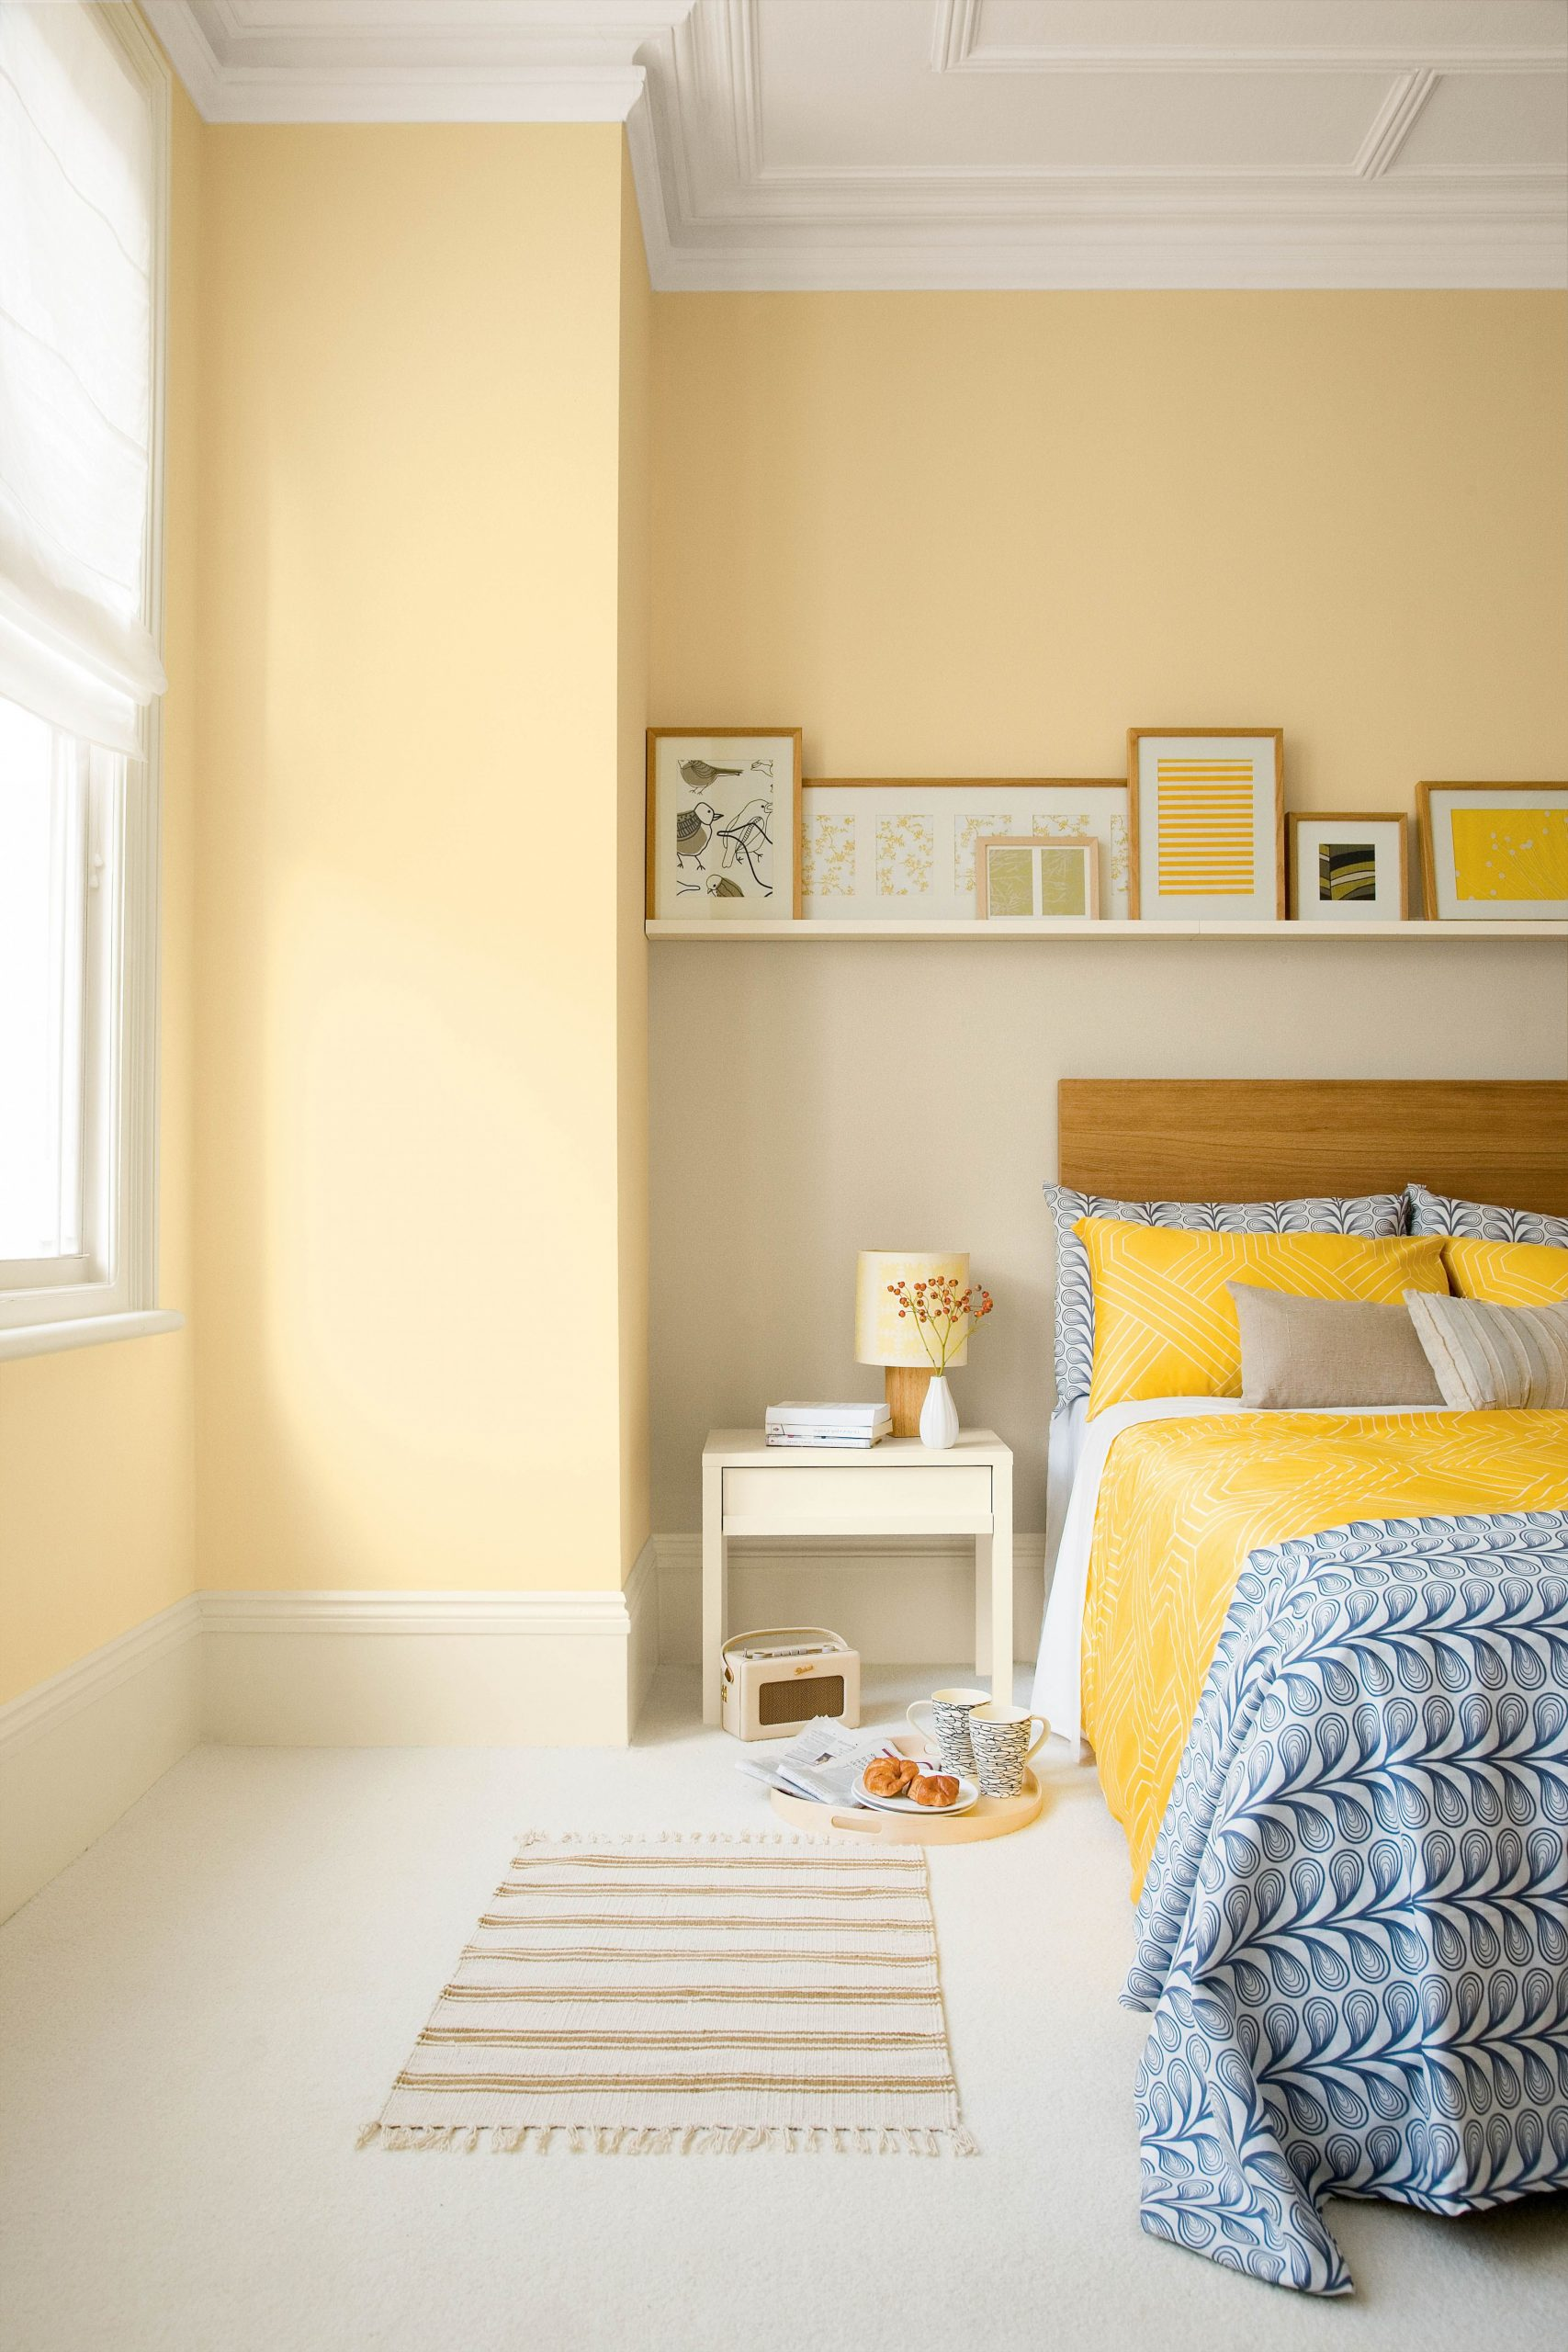 9 Yellow Bedroom Ideas To Brighten Your Space Just In Time For Spring - Bedroom Ideas Yellow